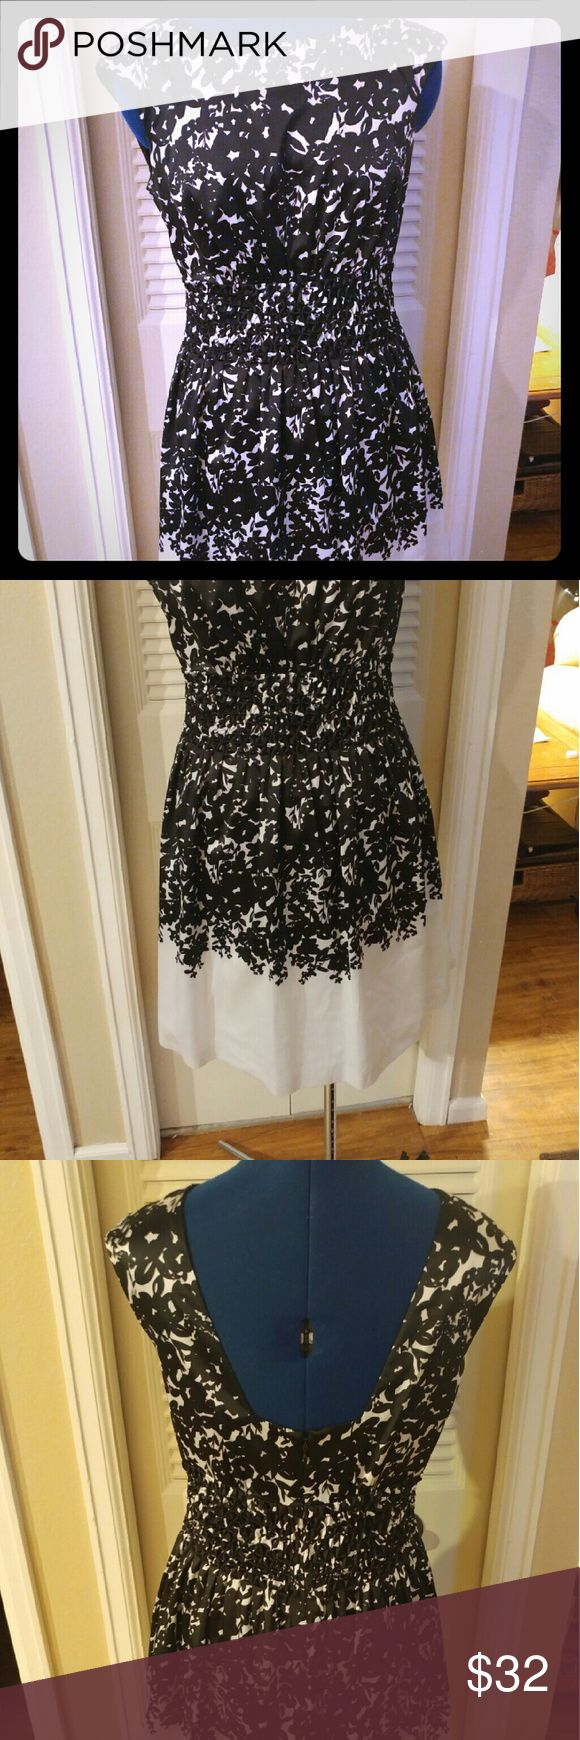 Floral Lovely Black and white classic cut floral dress, tea length, worn for a wedding and a Kentucky Derby party! Huge hit, all business in the front with lovely v shape cut out in the back. 4% spandex gives you a bit of breathing room around the middle but keeps a beautiful silhouette. Jessica Simpson Dresses Midi